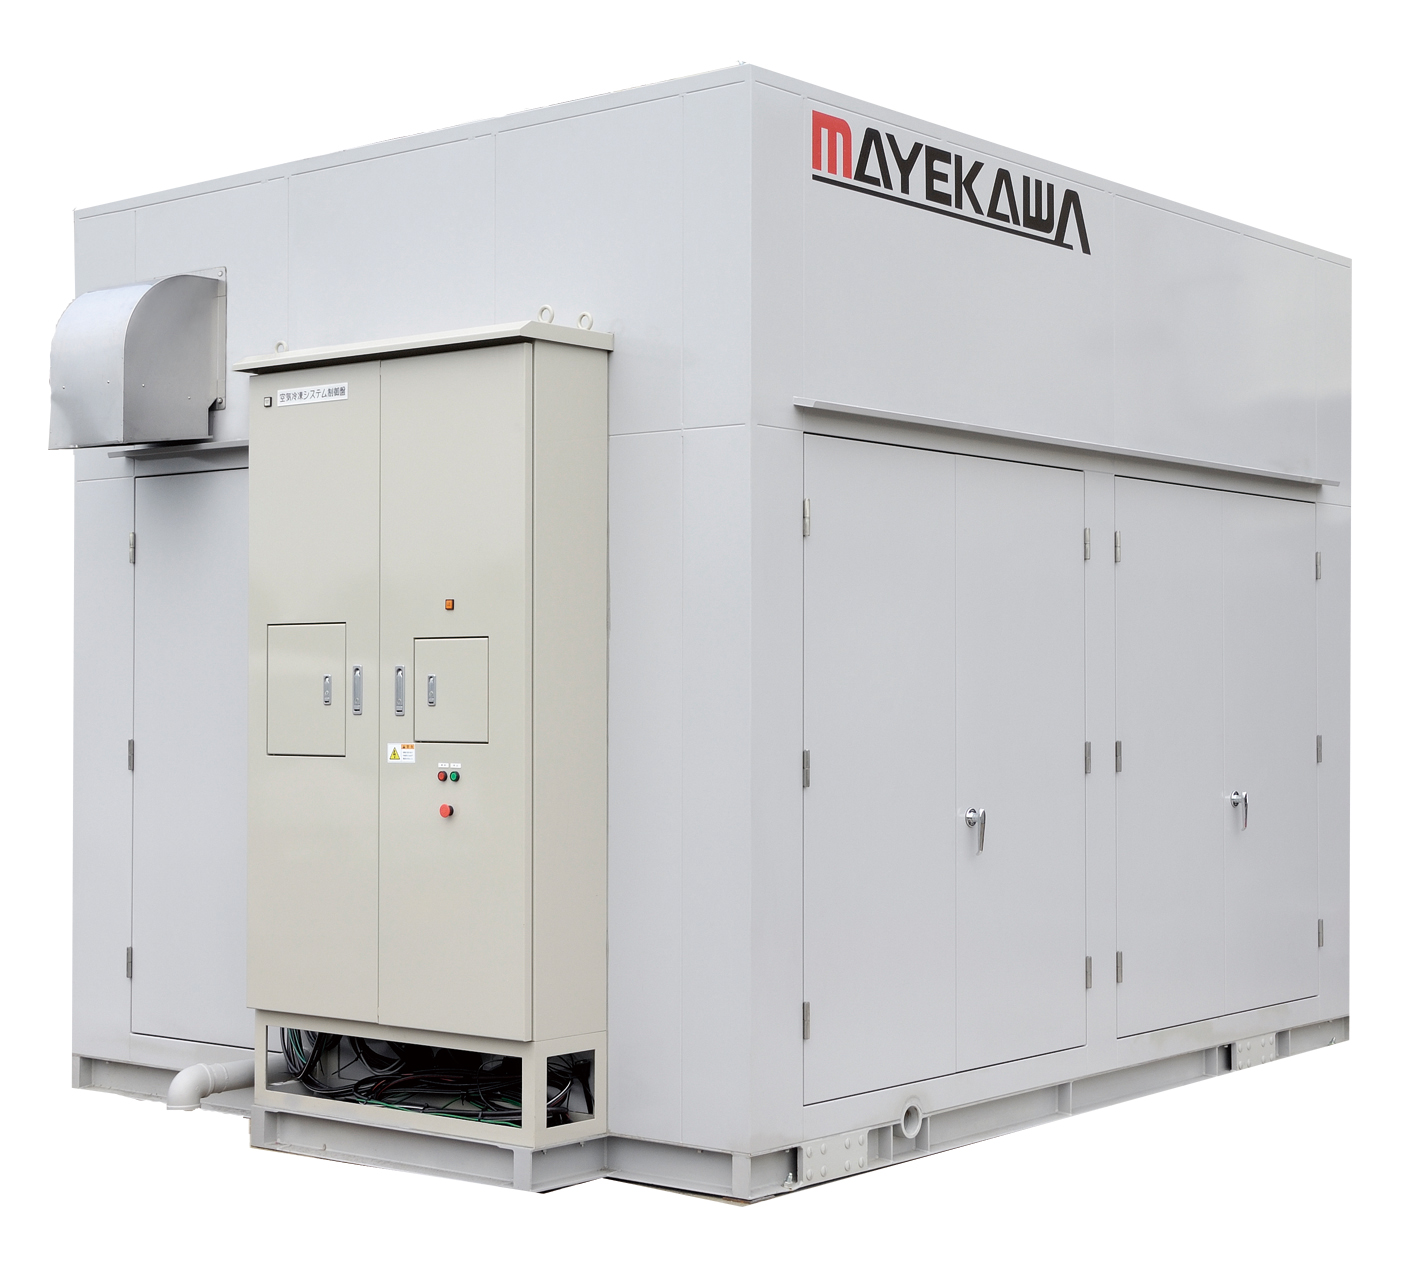 IMA Life and Mayekawa propose this new refrigeration technology referred as PascalAir